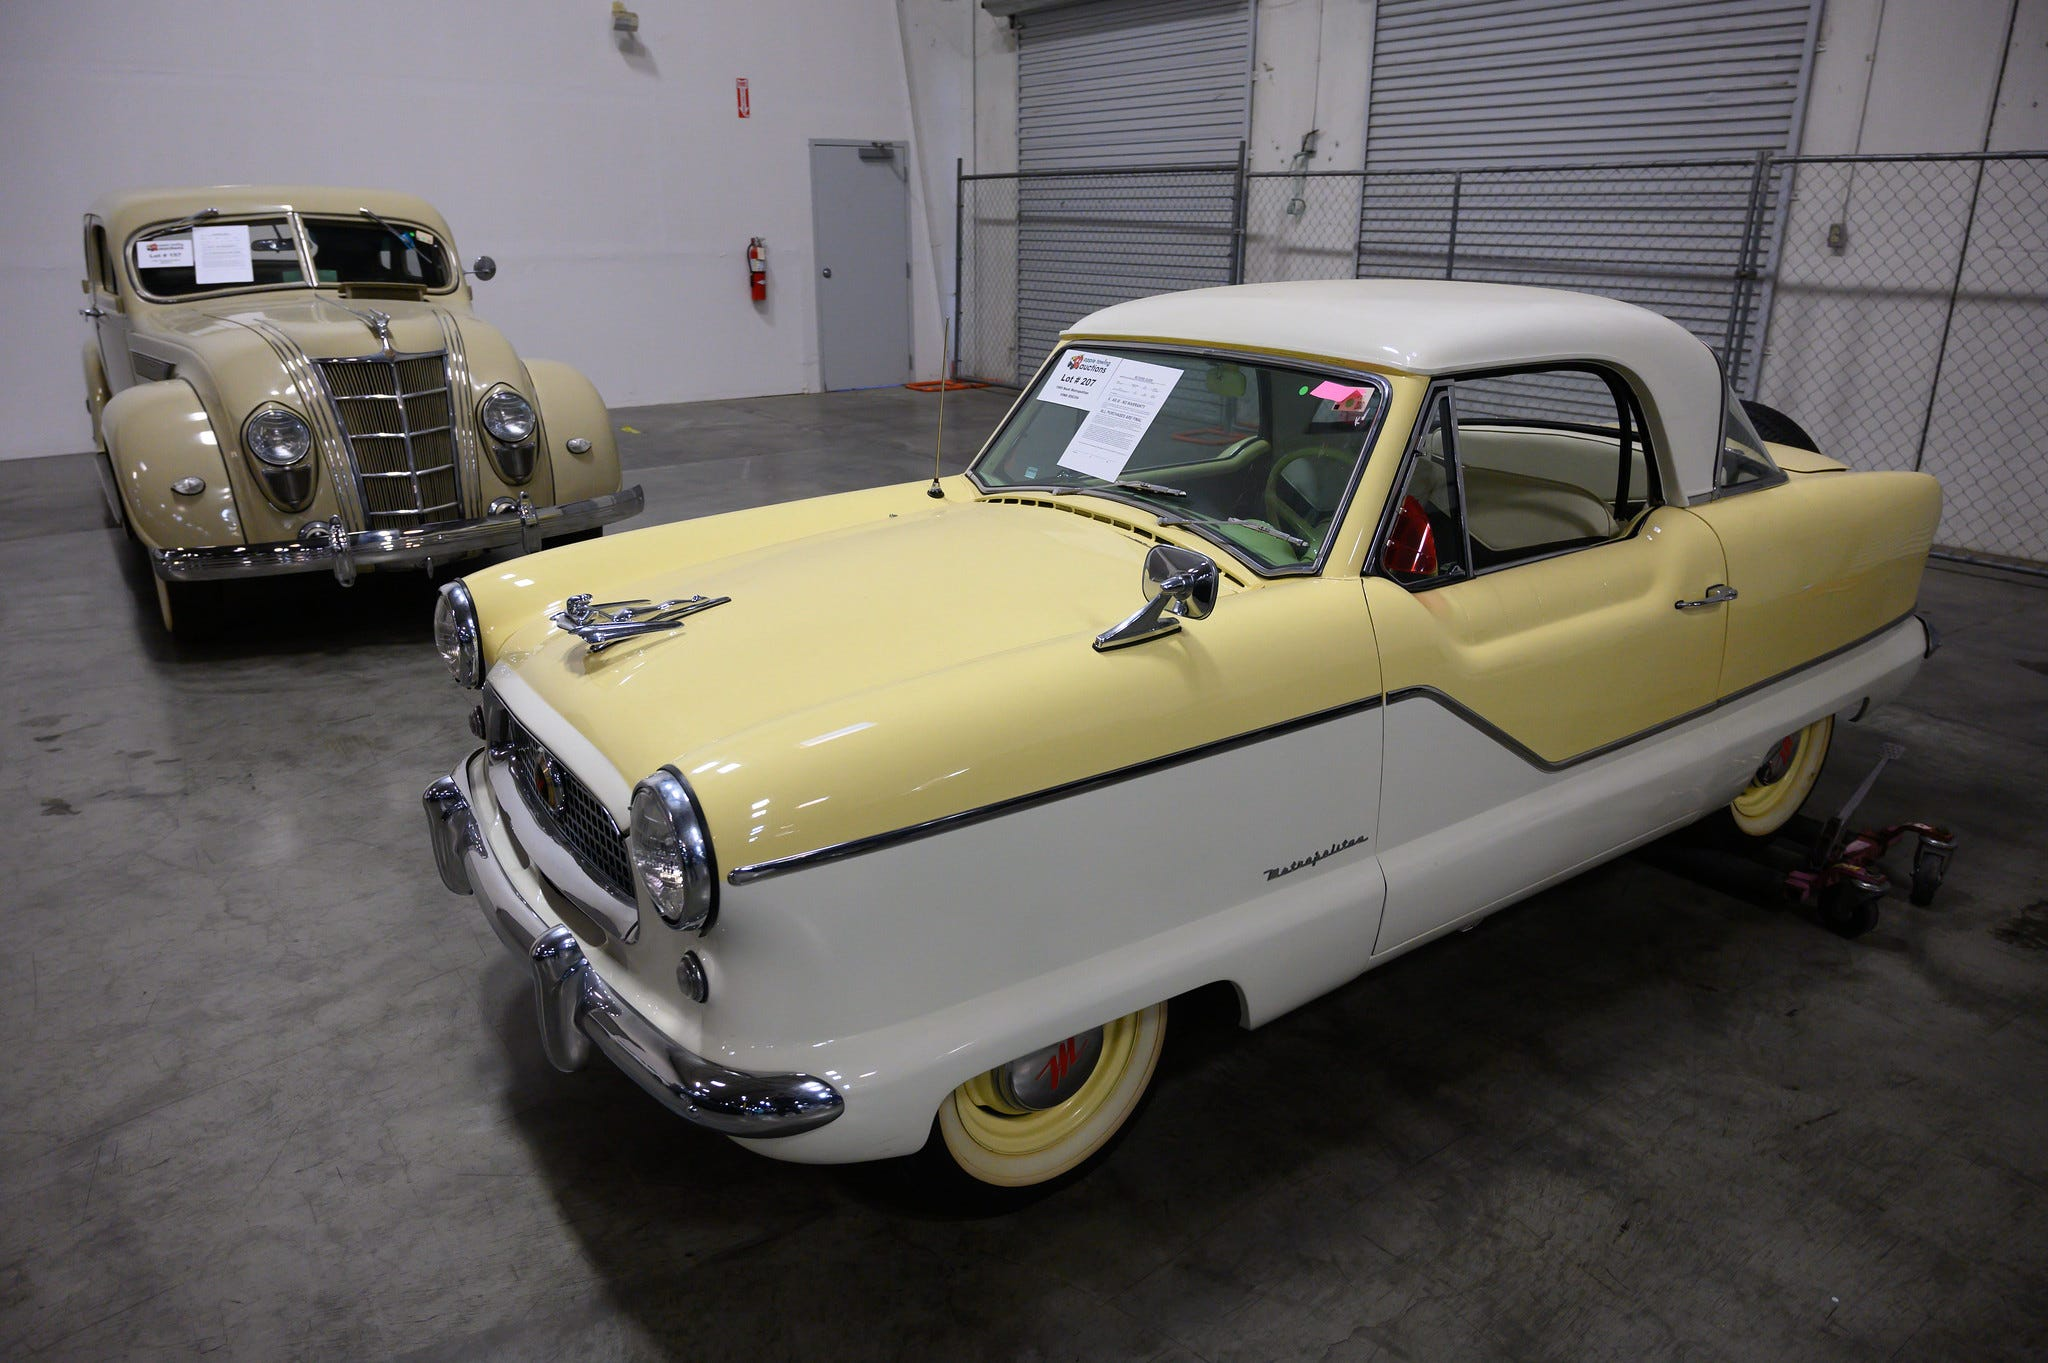 Classic Cars 149 Vehicles Up For Sale In Largest Us Marshals Auction